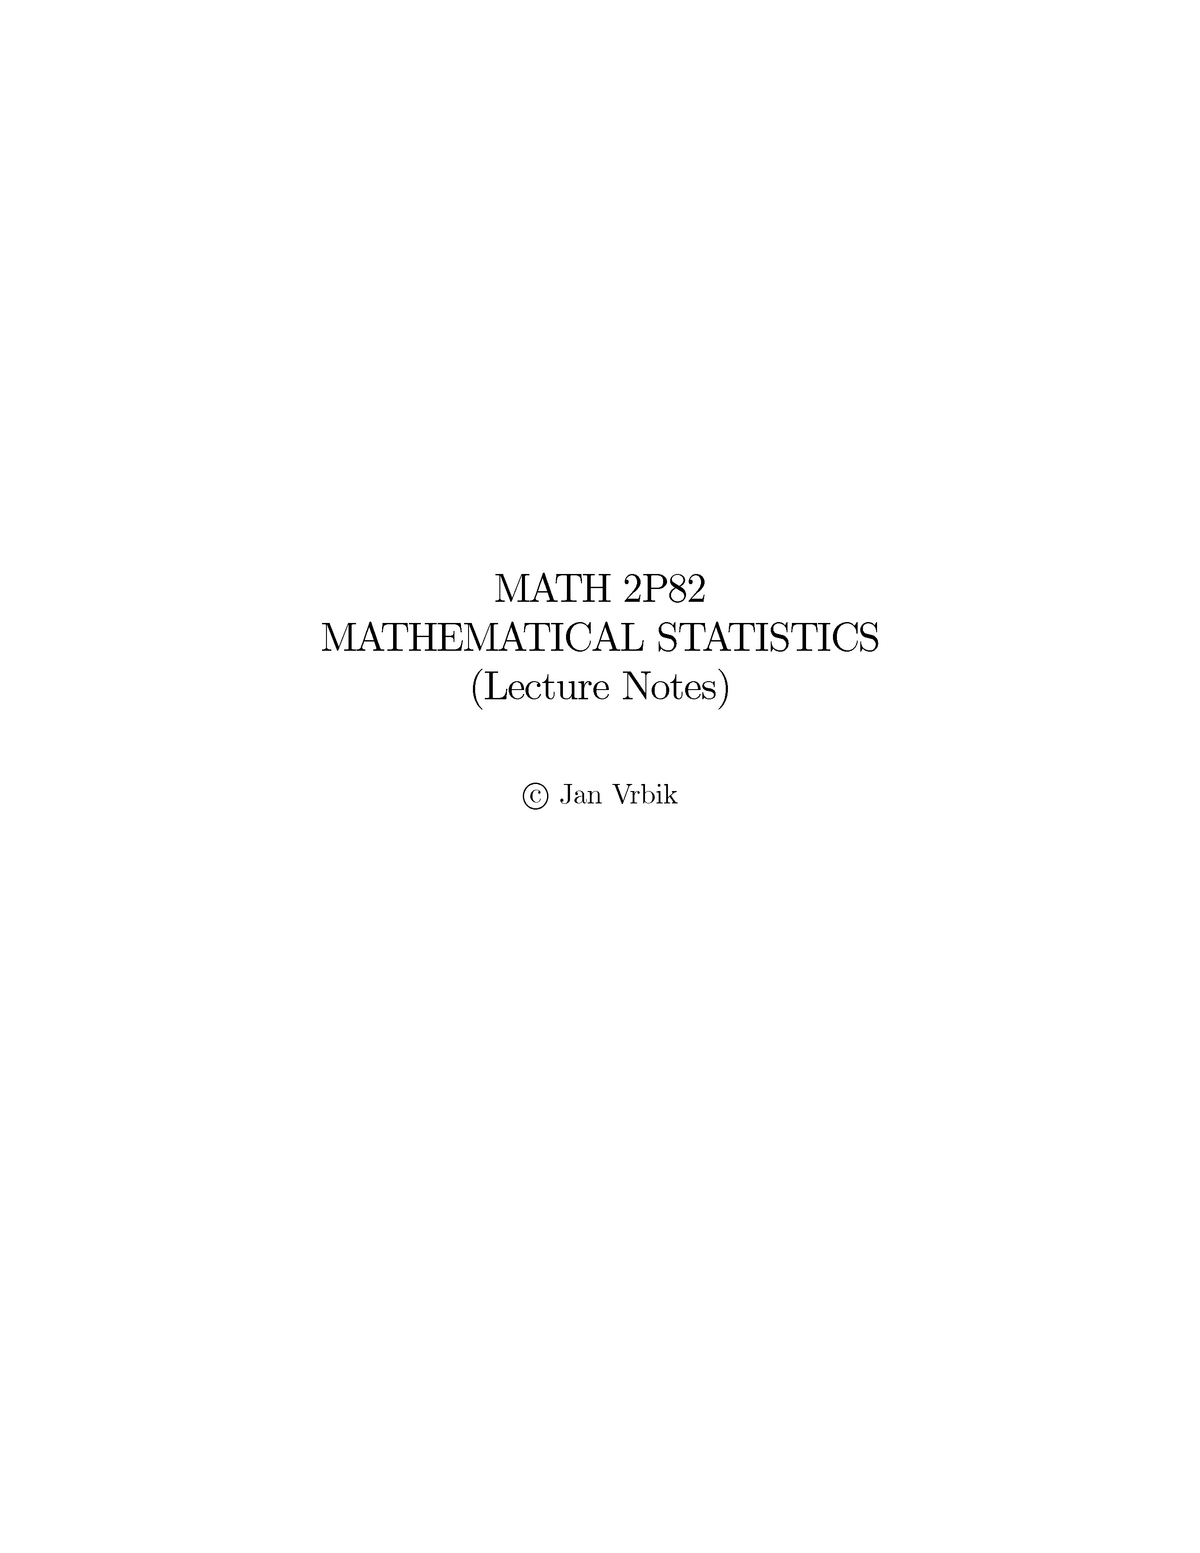 Mathematical Statistics Lecture notes, lecture All - StuDocu